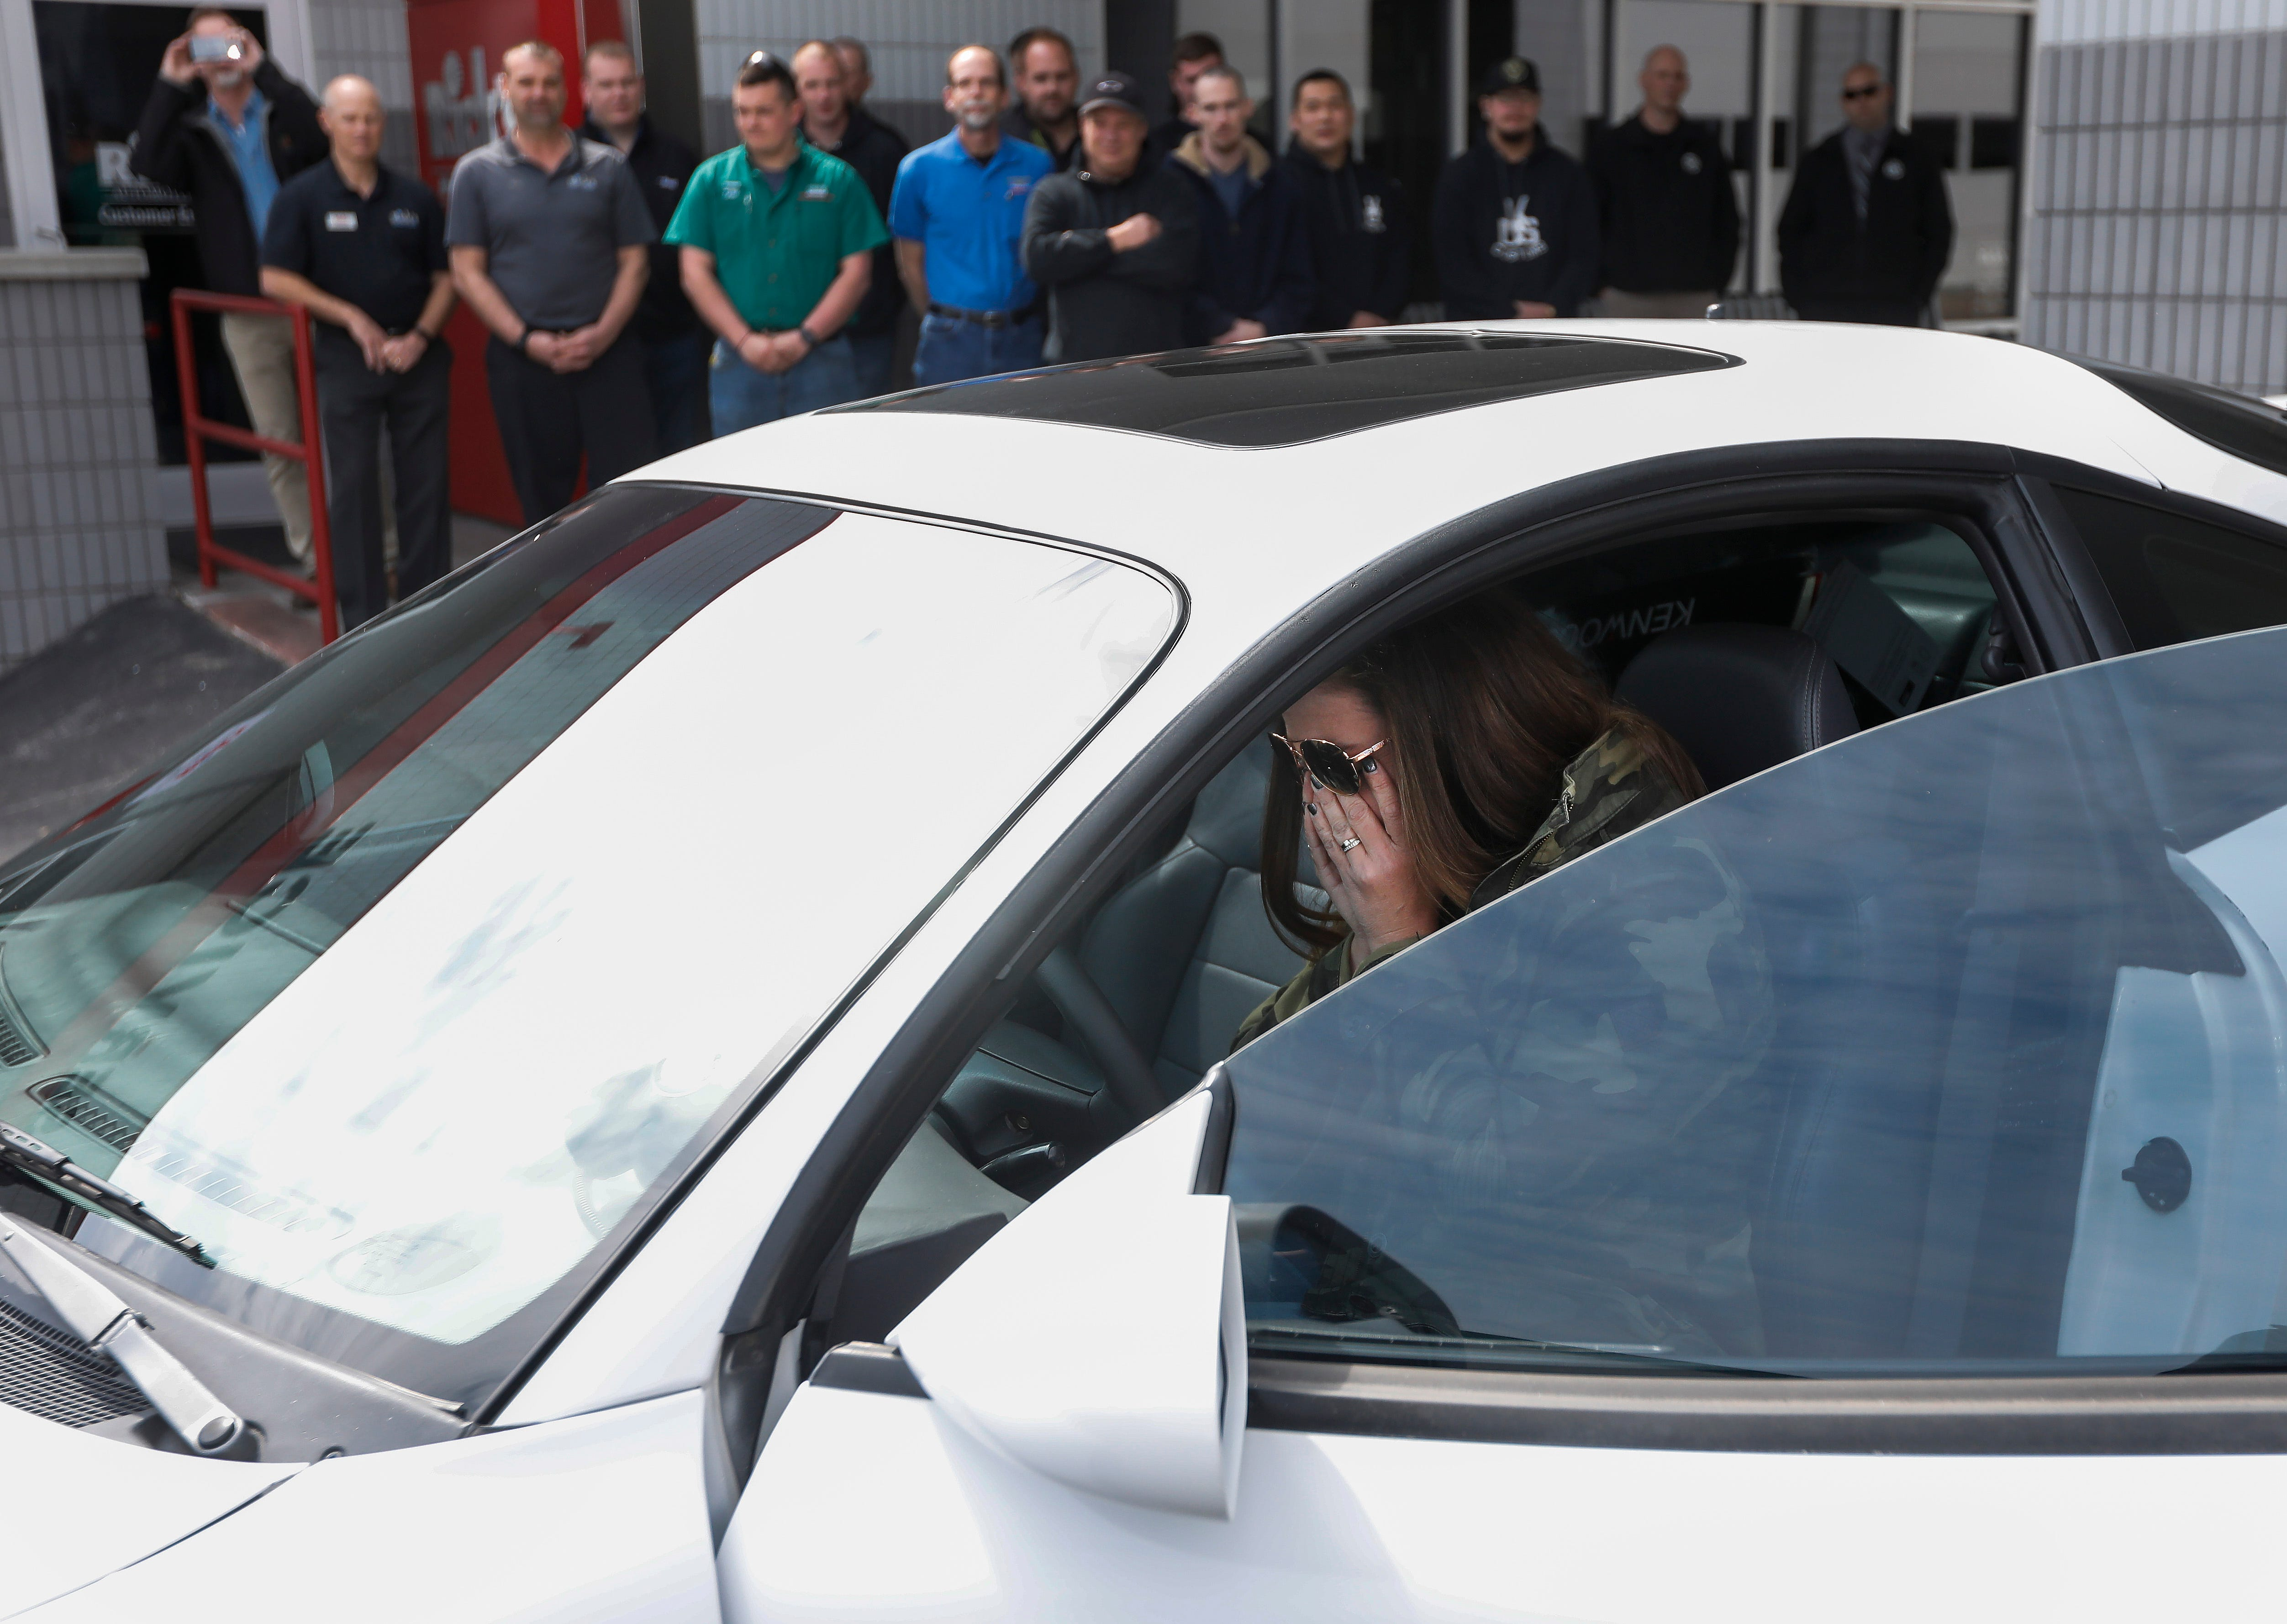 Kim Roberts, widow of Greene County Deputy Aaron Roberts, reacts after sitting in the 1995 Mitsubishi Eclipse that her husband was restoring before he died.